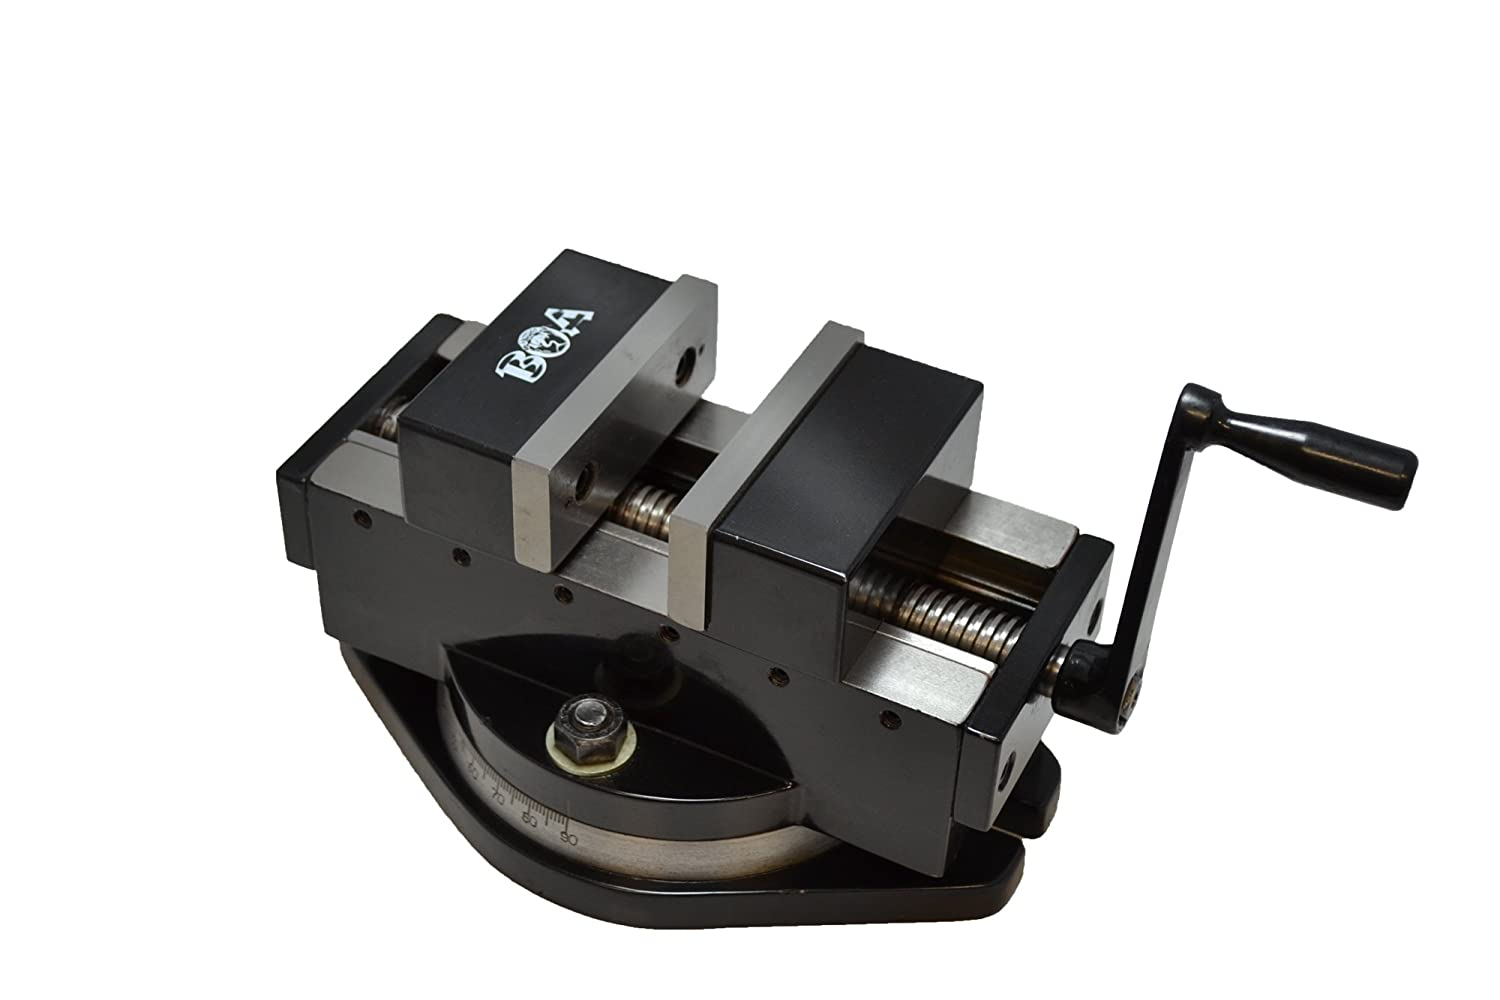 Image of Boa 110081 Precision Self Centering Vise with Swivel Base, 4 x 4 Bench Vises